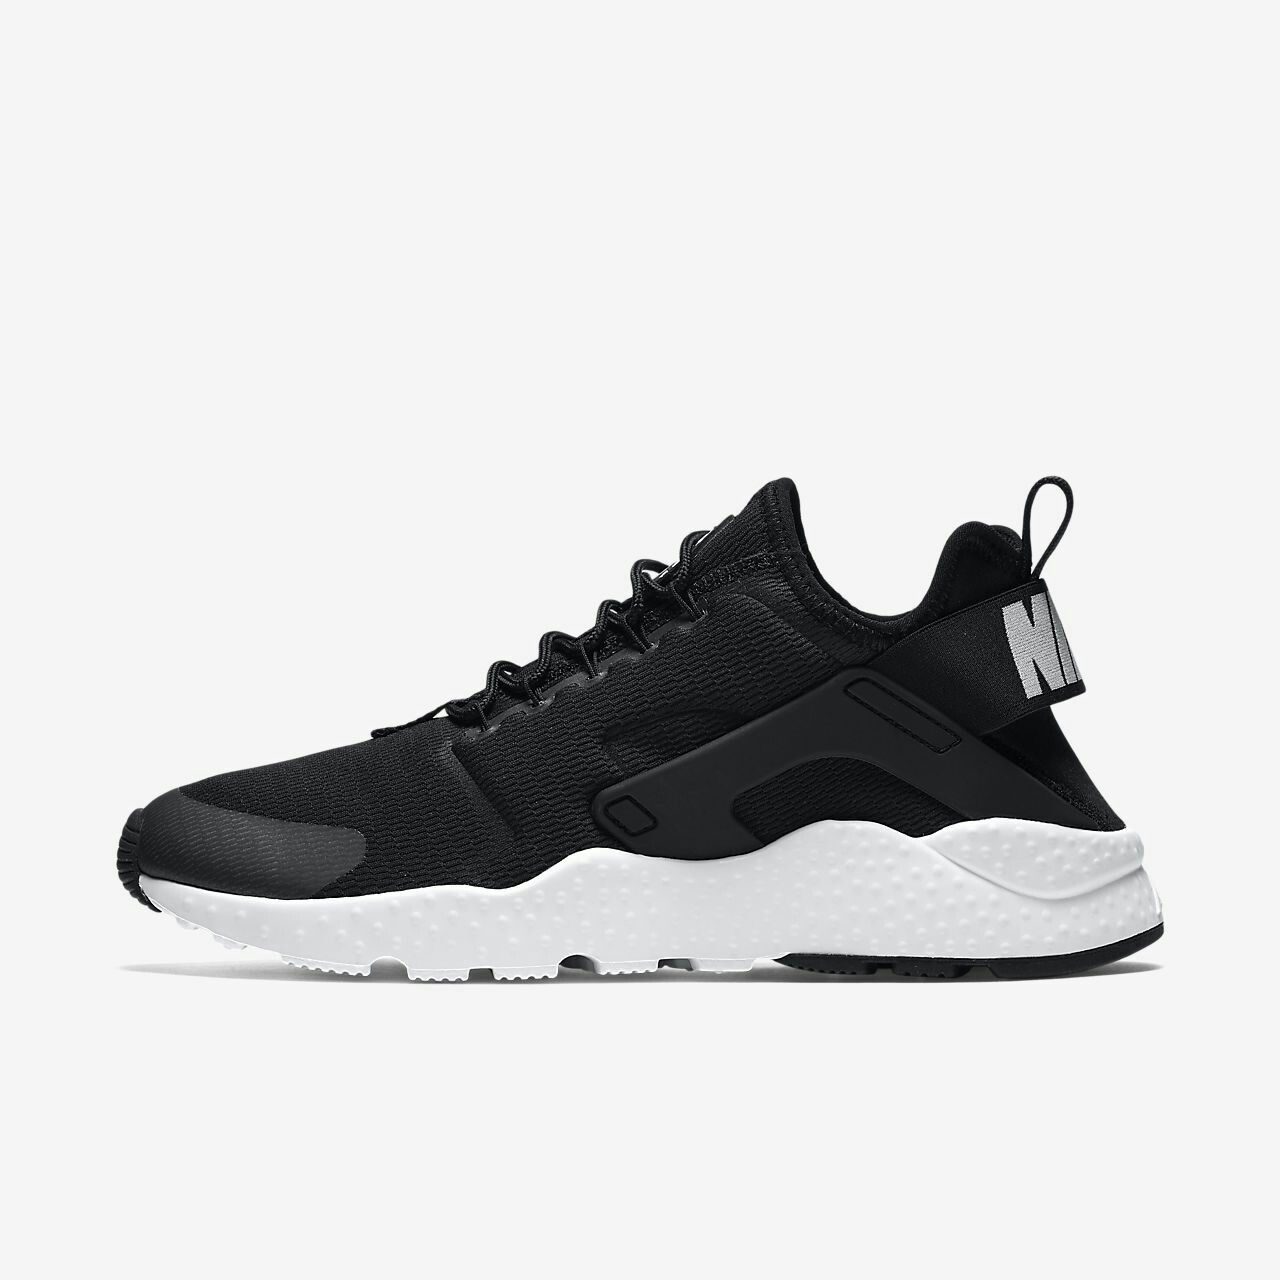 Nike AIR HUARACHE RUN ULTRA sooco.nl Clothing, Shoes